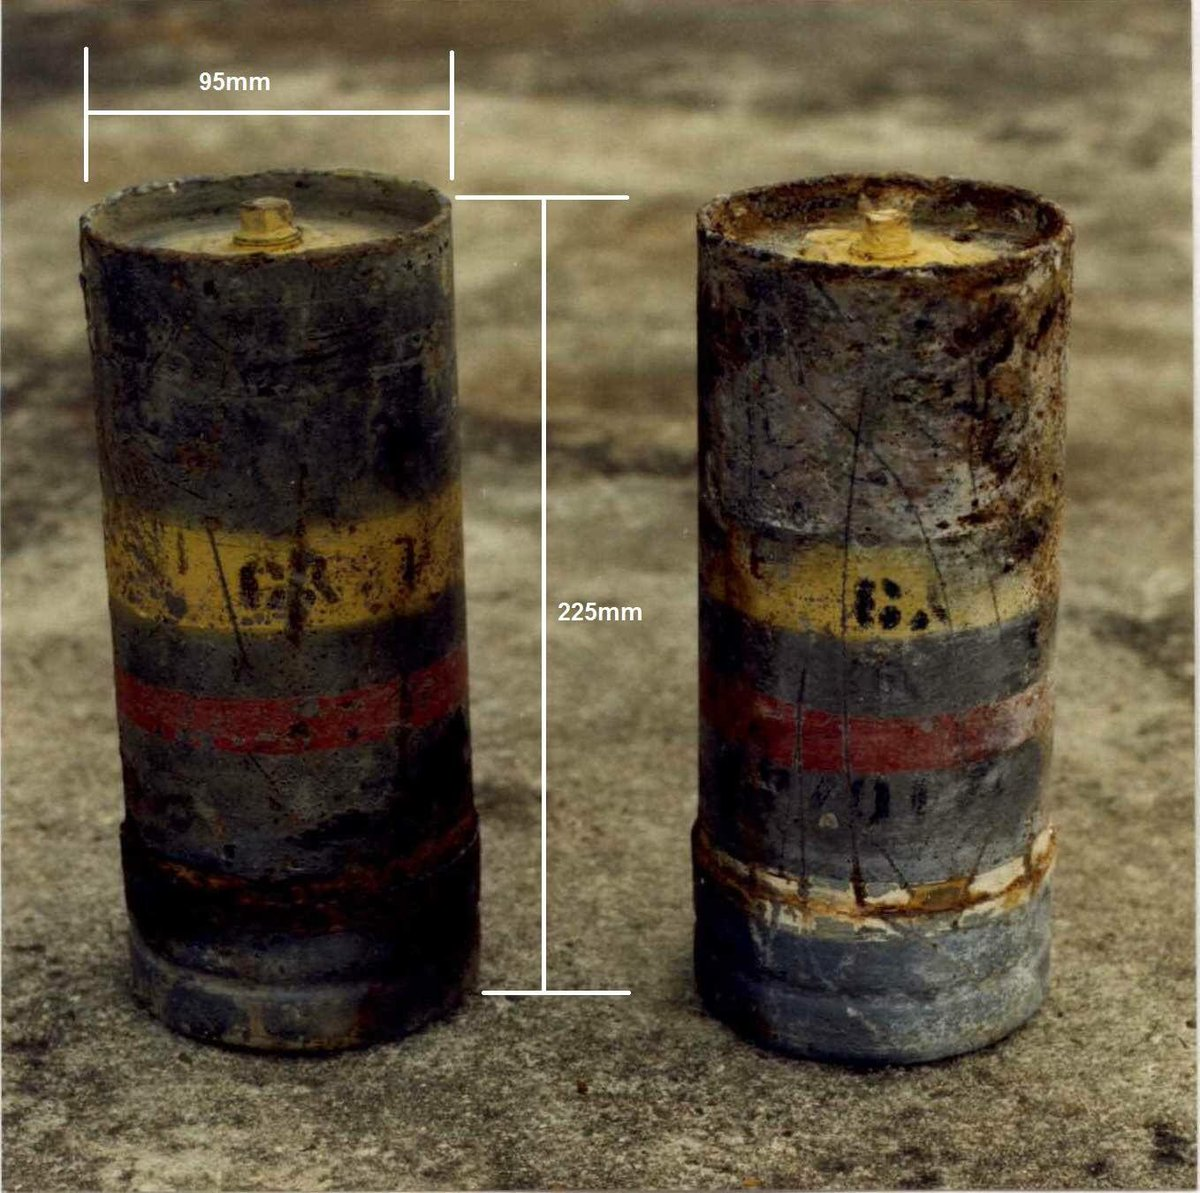 Best Gas Can >> Mustard Gas Canister   www.pixshark.com - Images Galleries With A Bite!